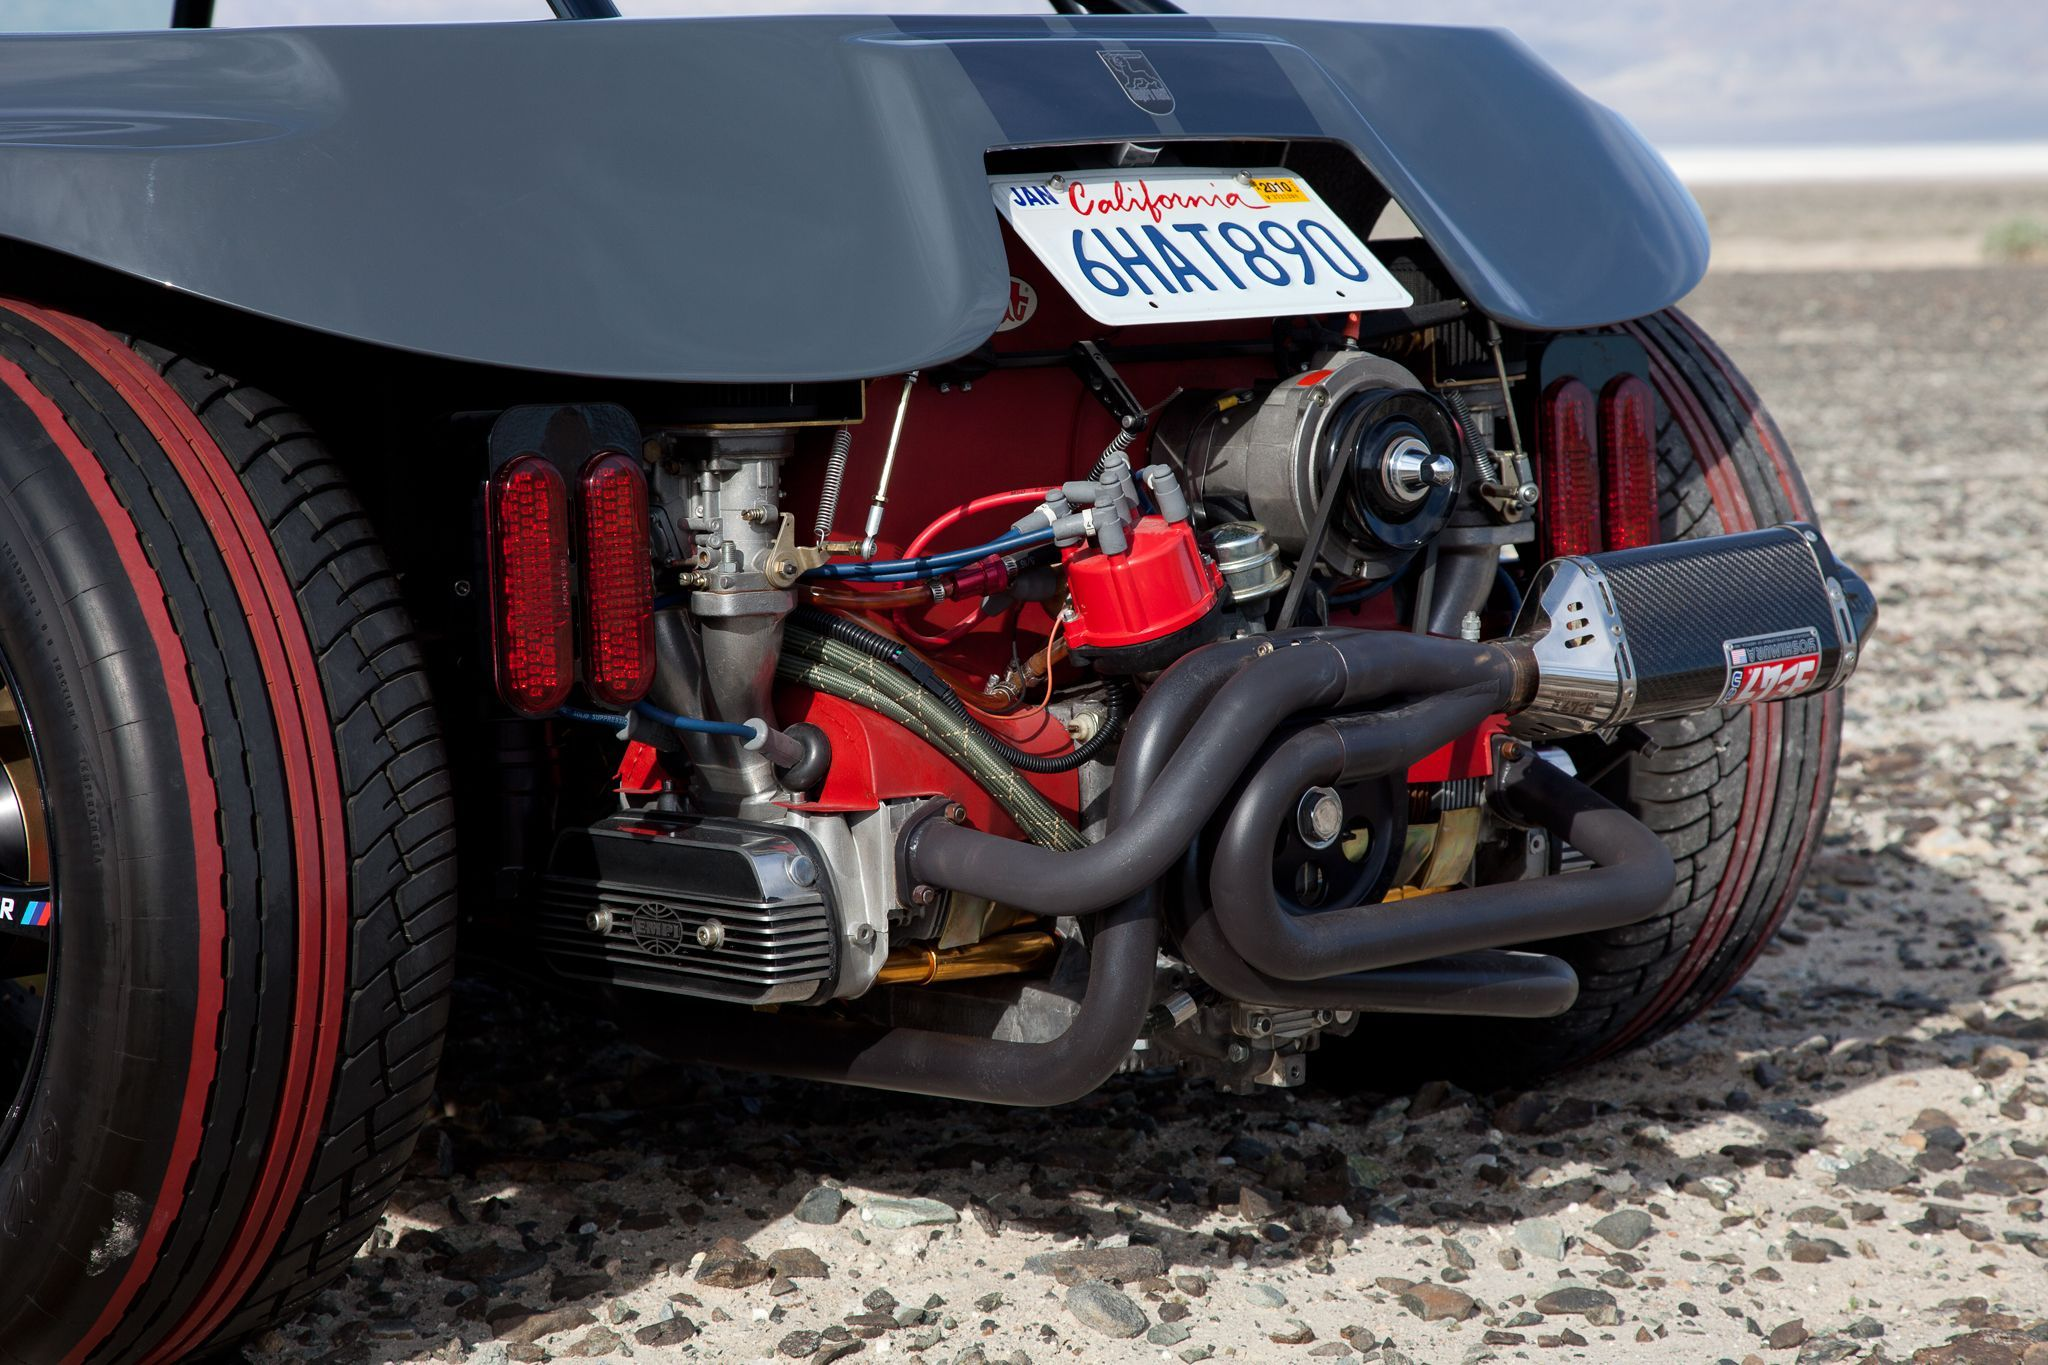 1776cc Scat air-cooled engine runs on twin Webers and features a